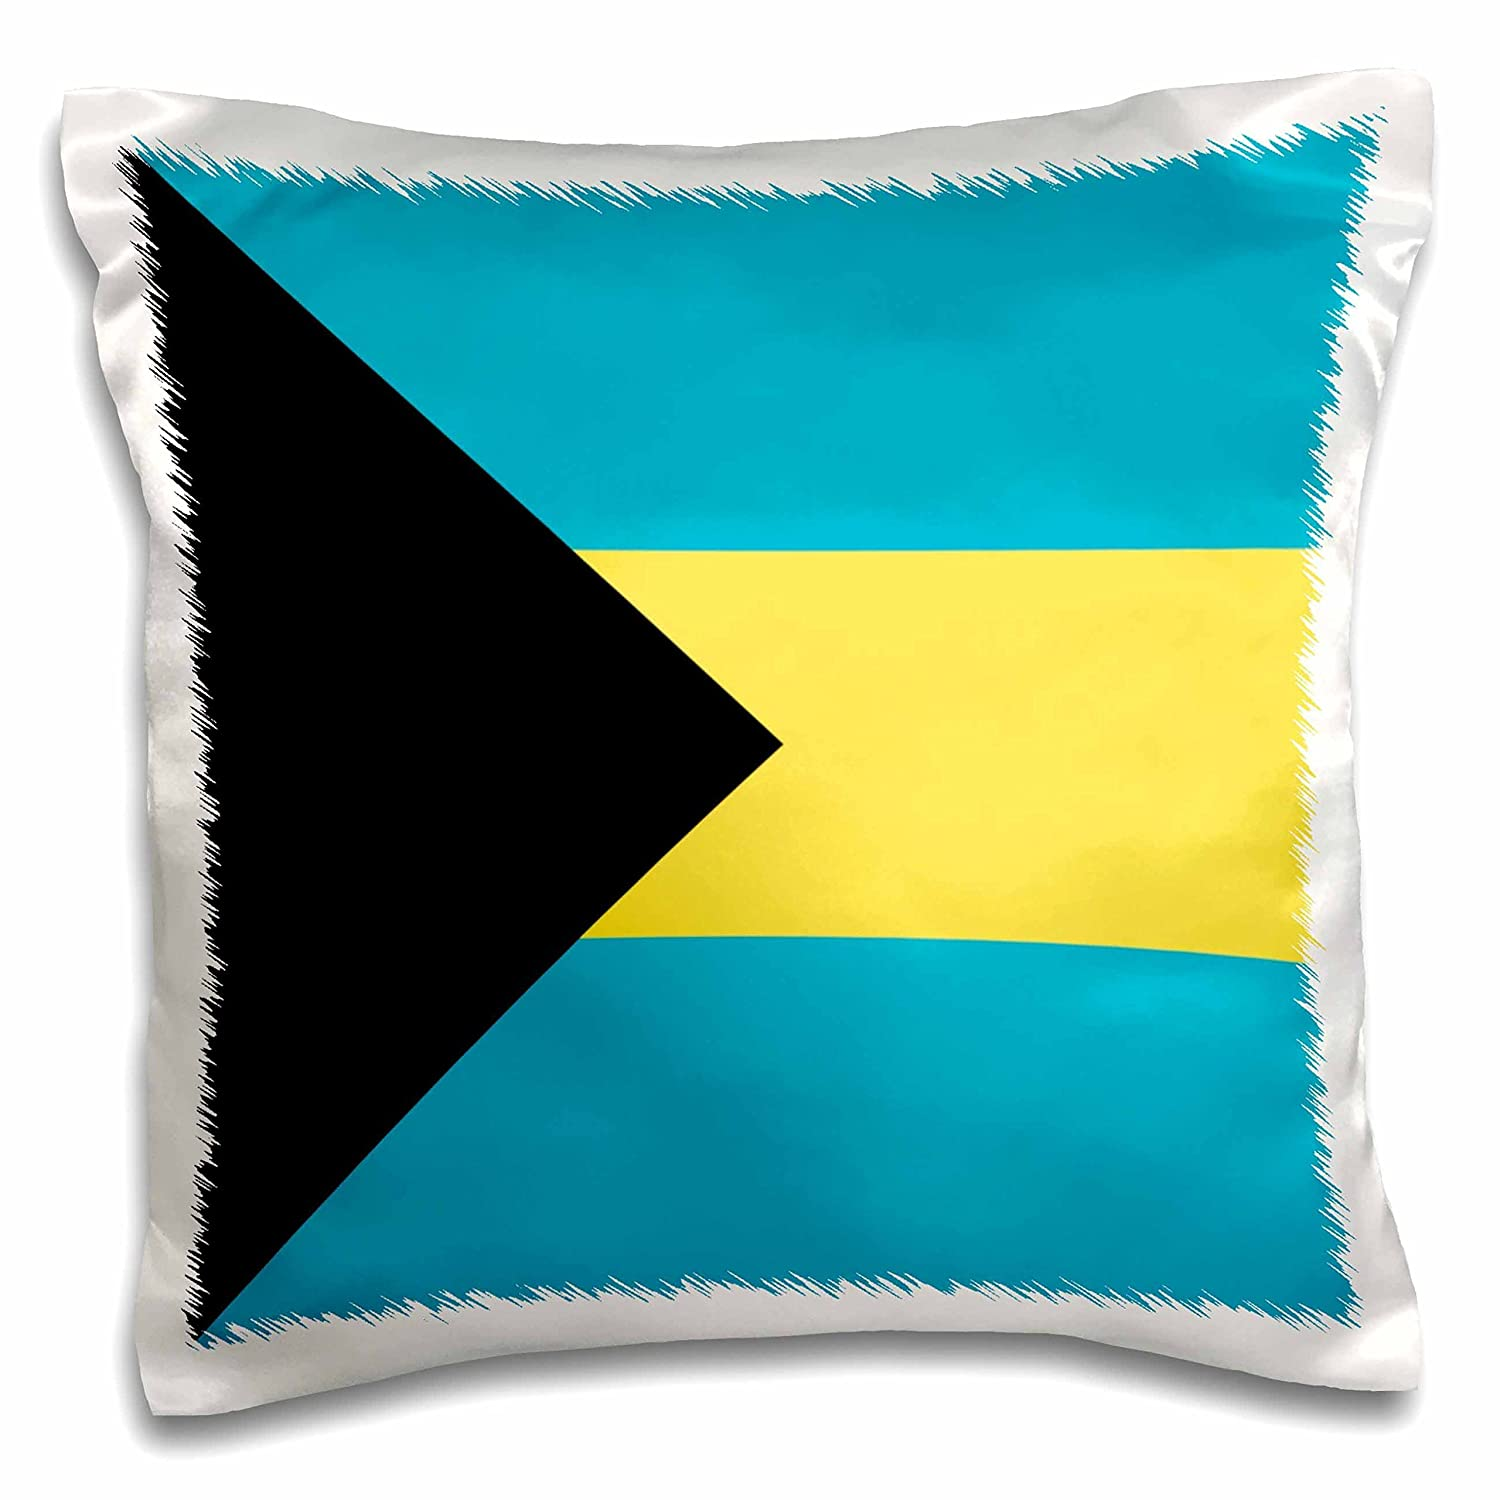 3D Rose Flag of The Bahamas Islands Bahamian Blue Yellow Gold Stripes Black Triangle Country World Souvenir Design Pillowcase 16 x 16